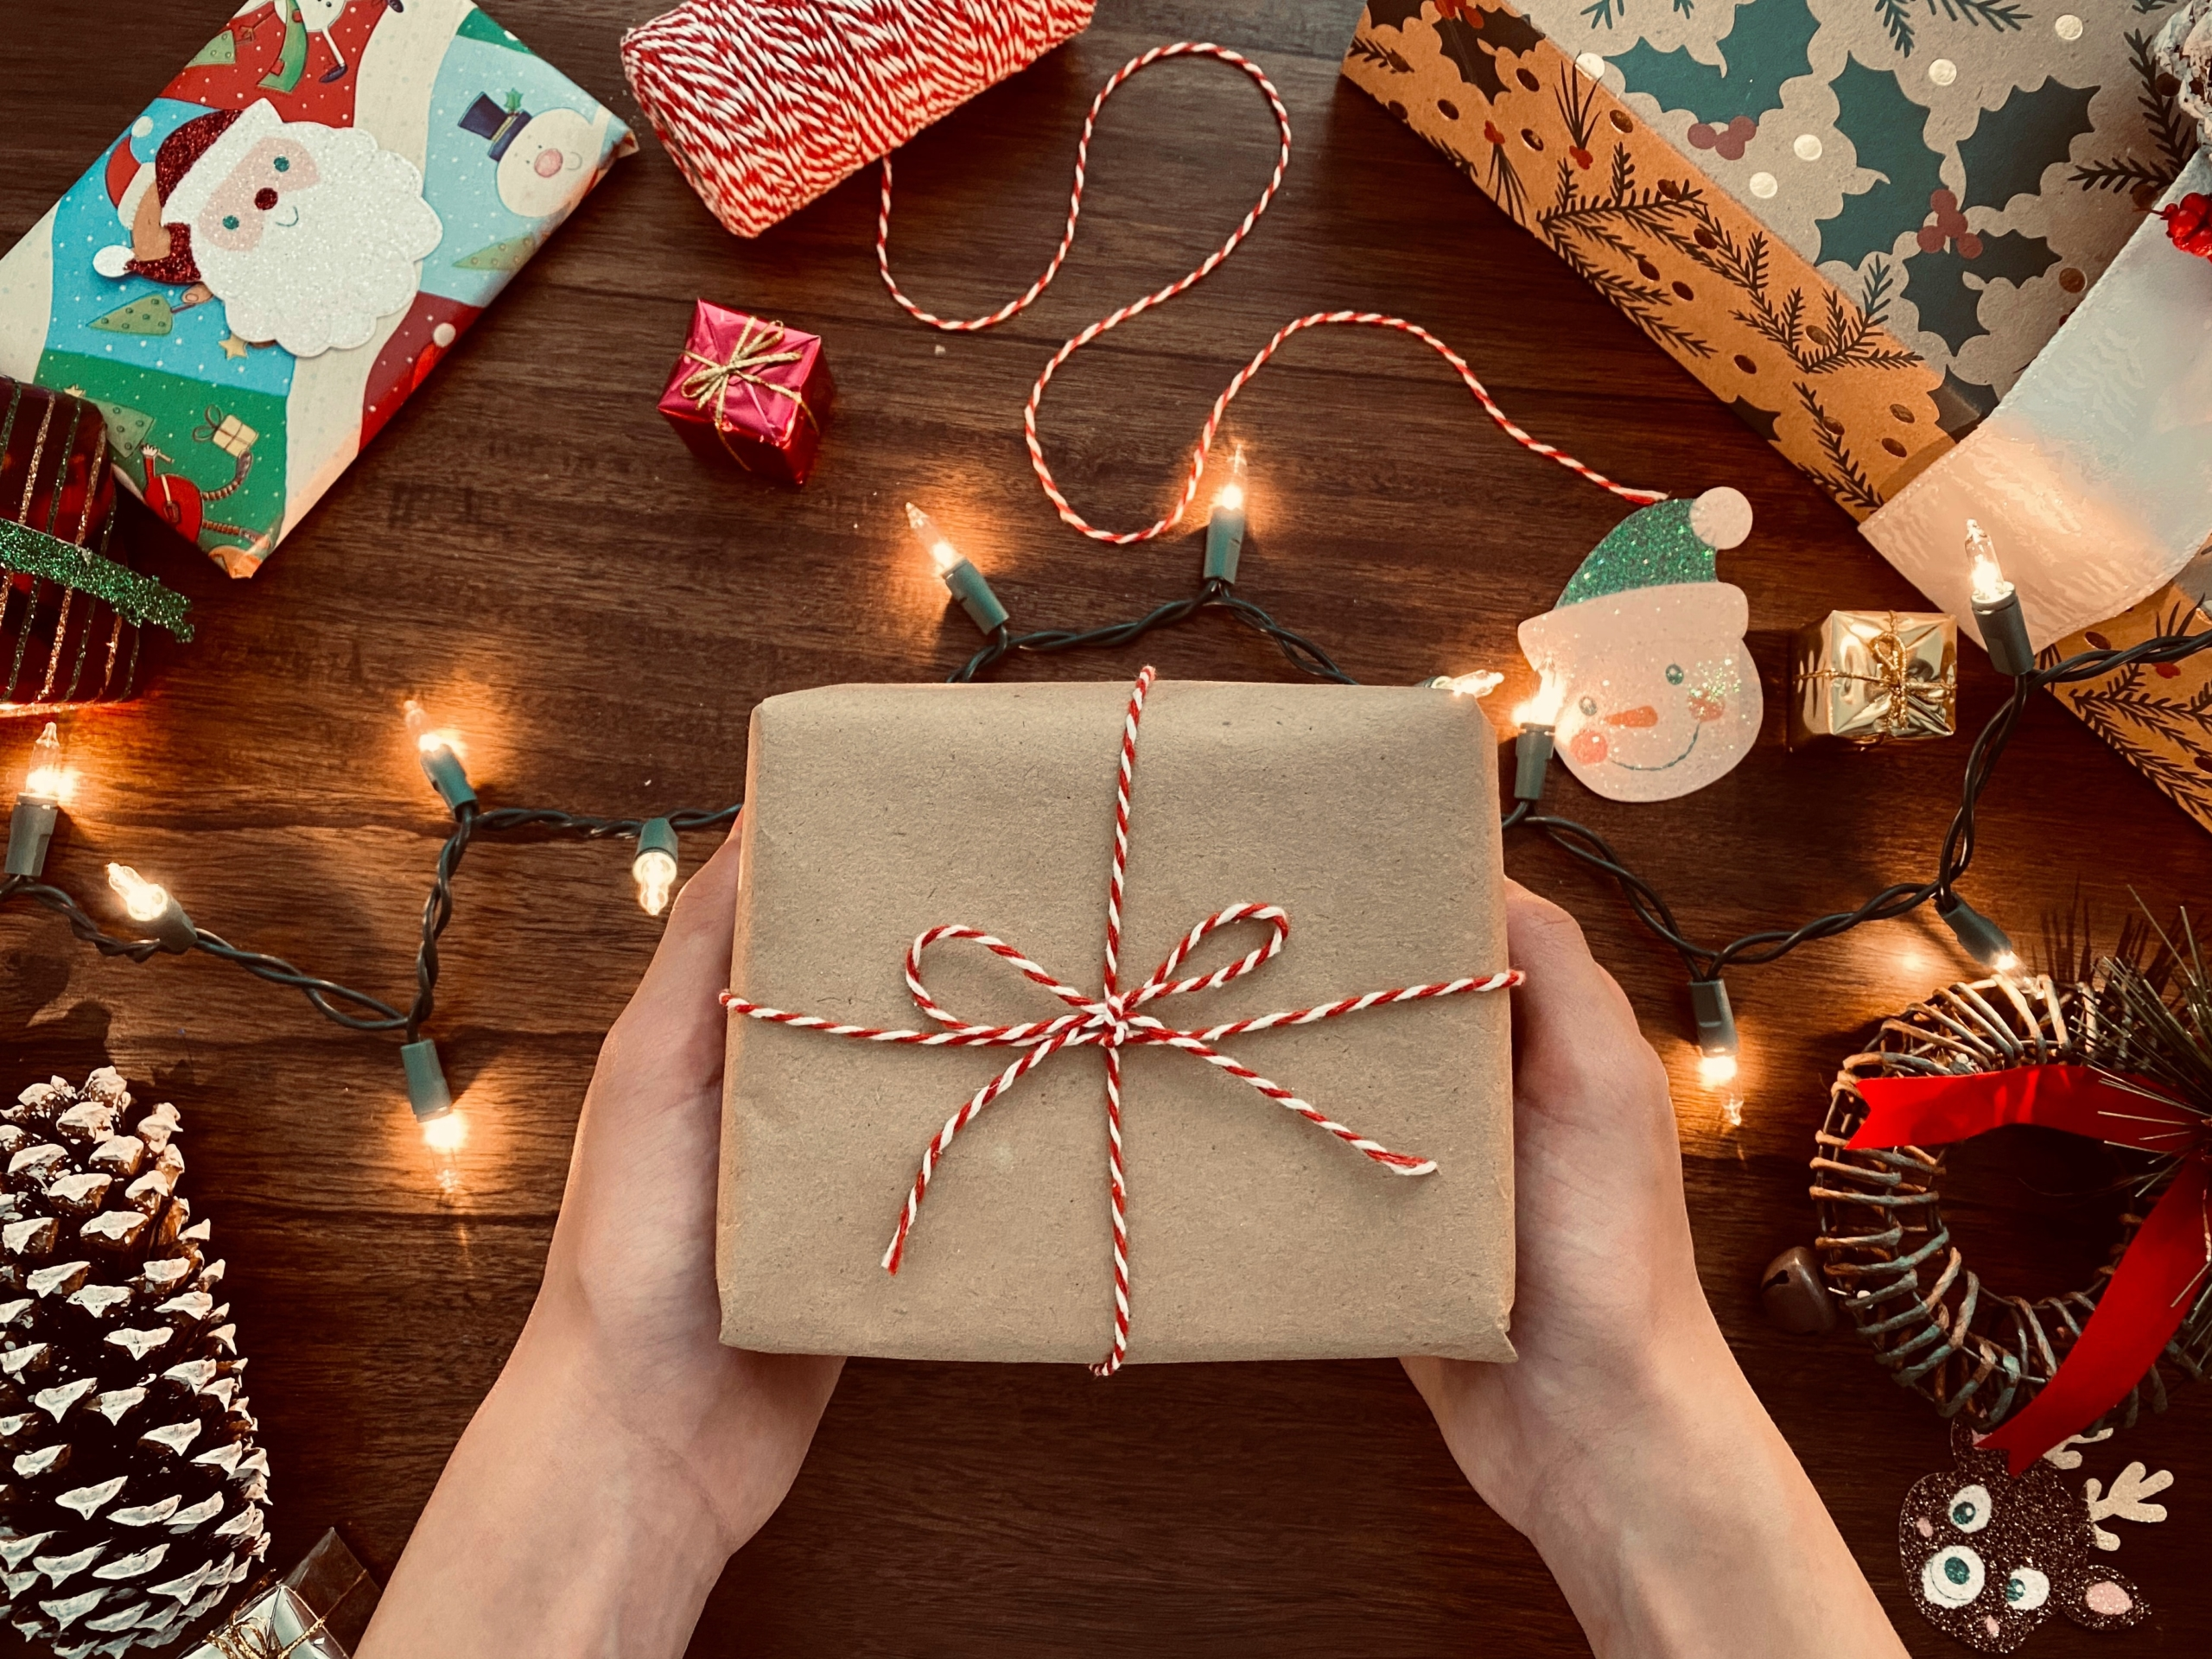 Best artsy gifts for you!